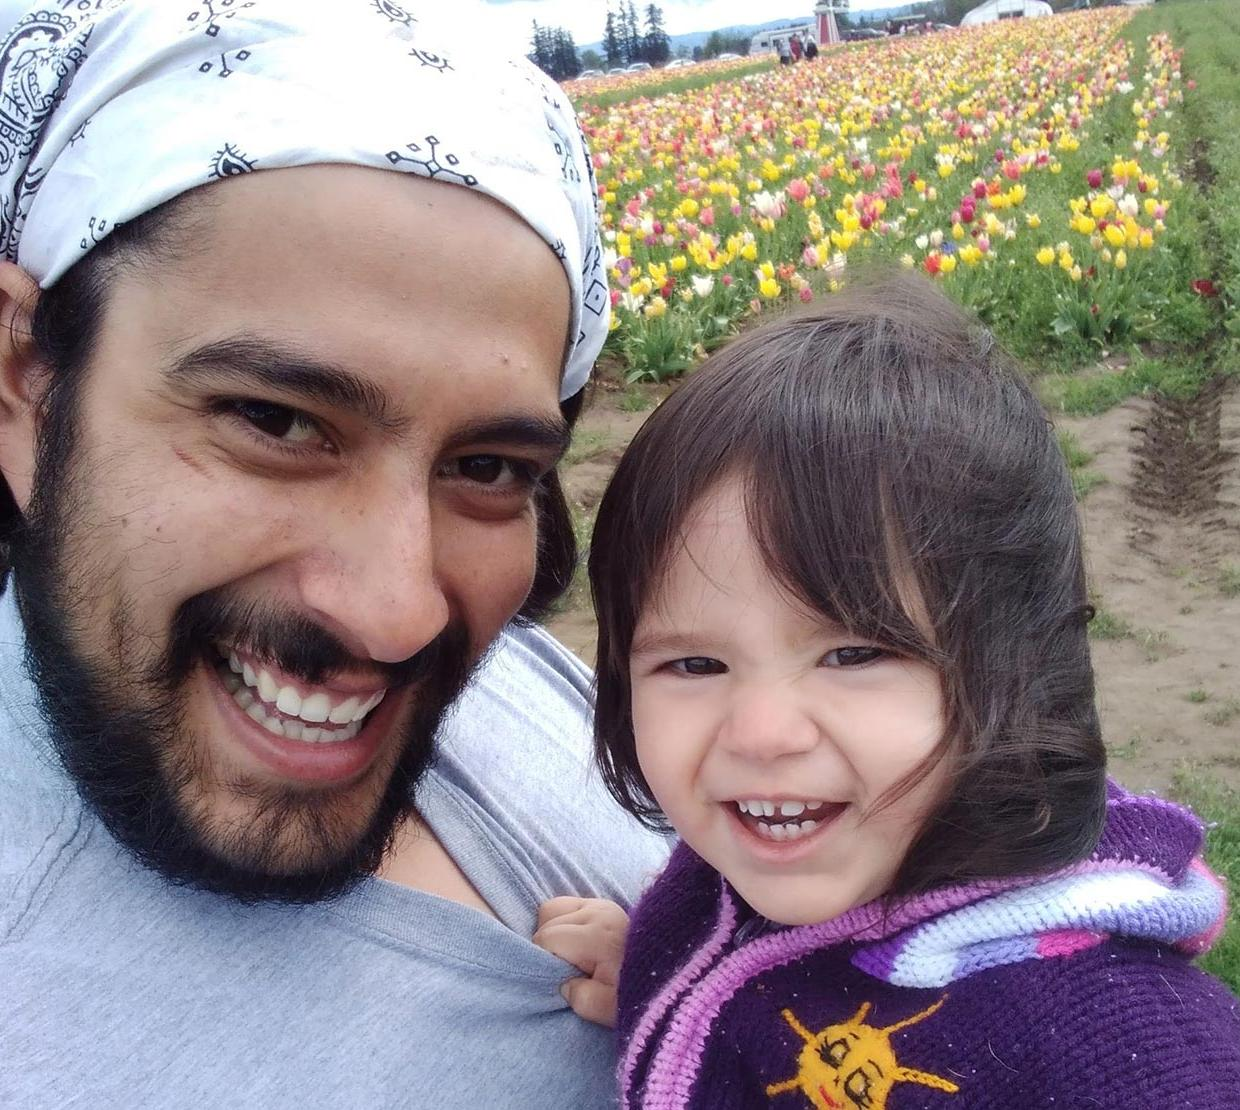 Oregon State physics graduate with daughter amid tulips.